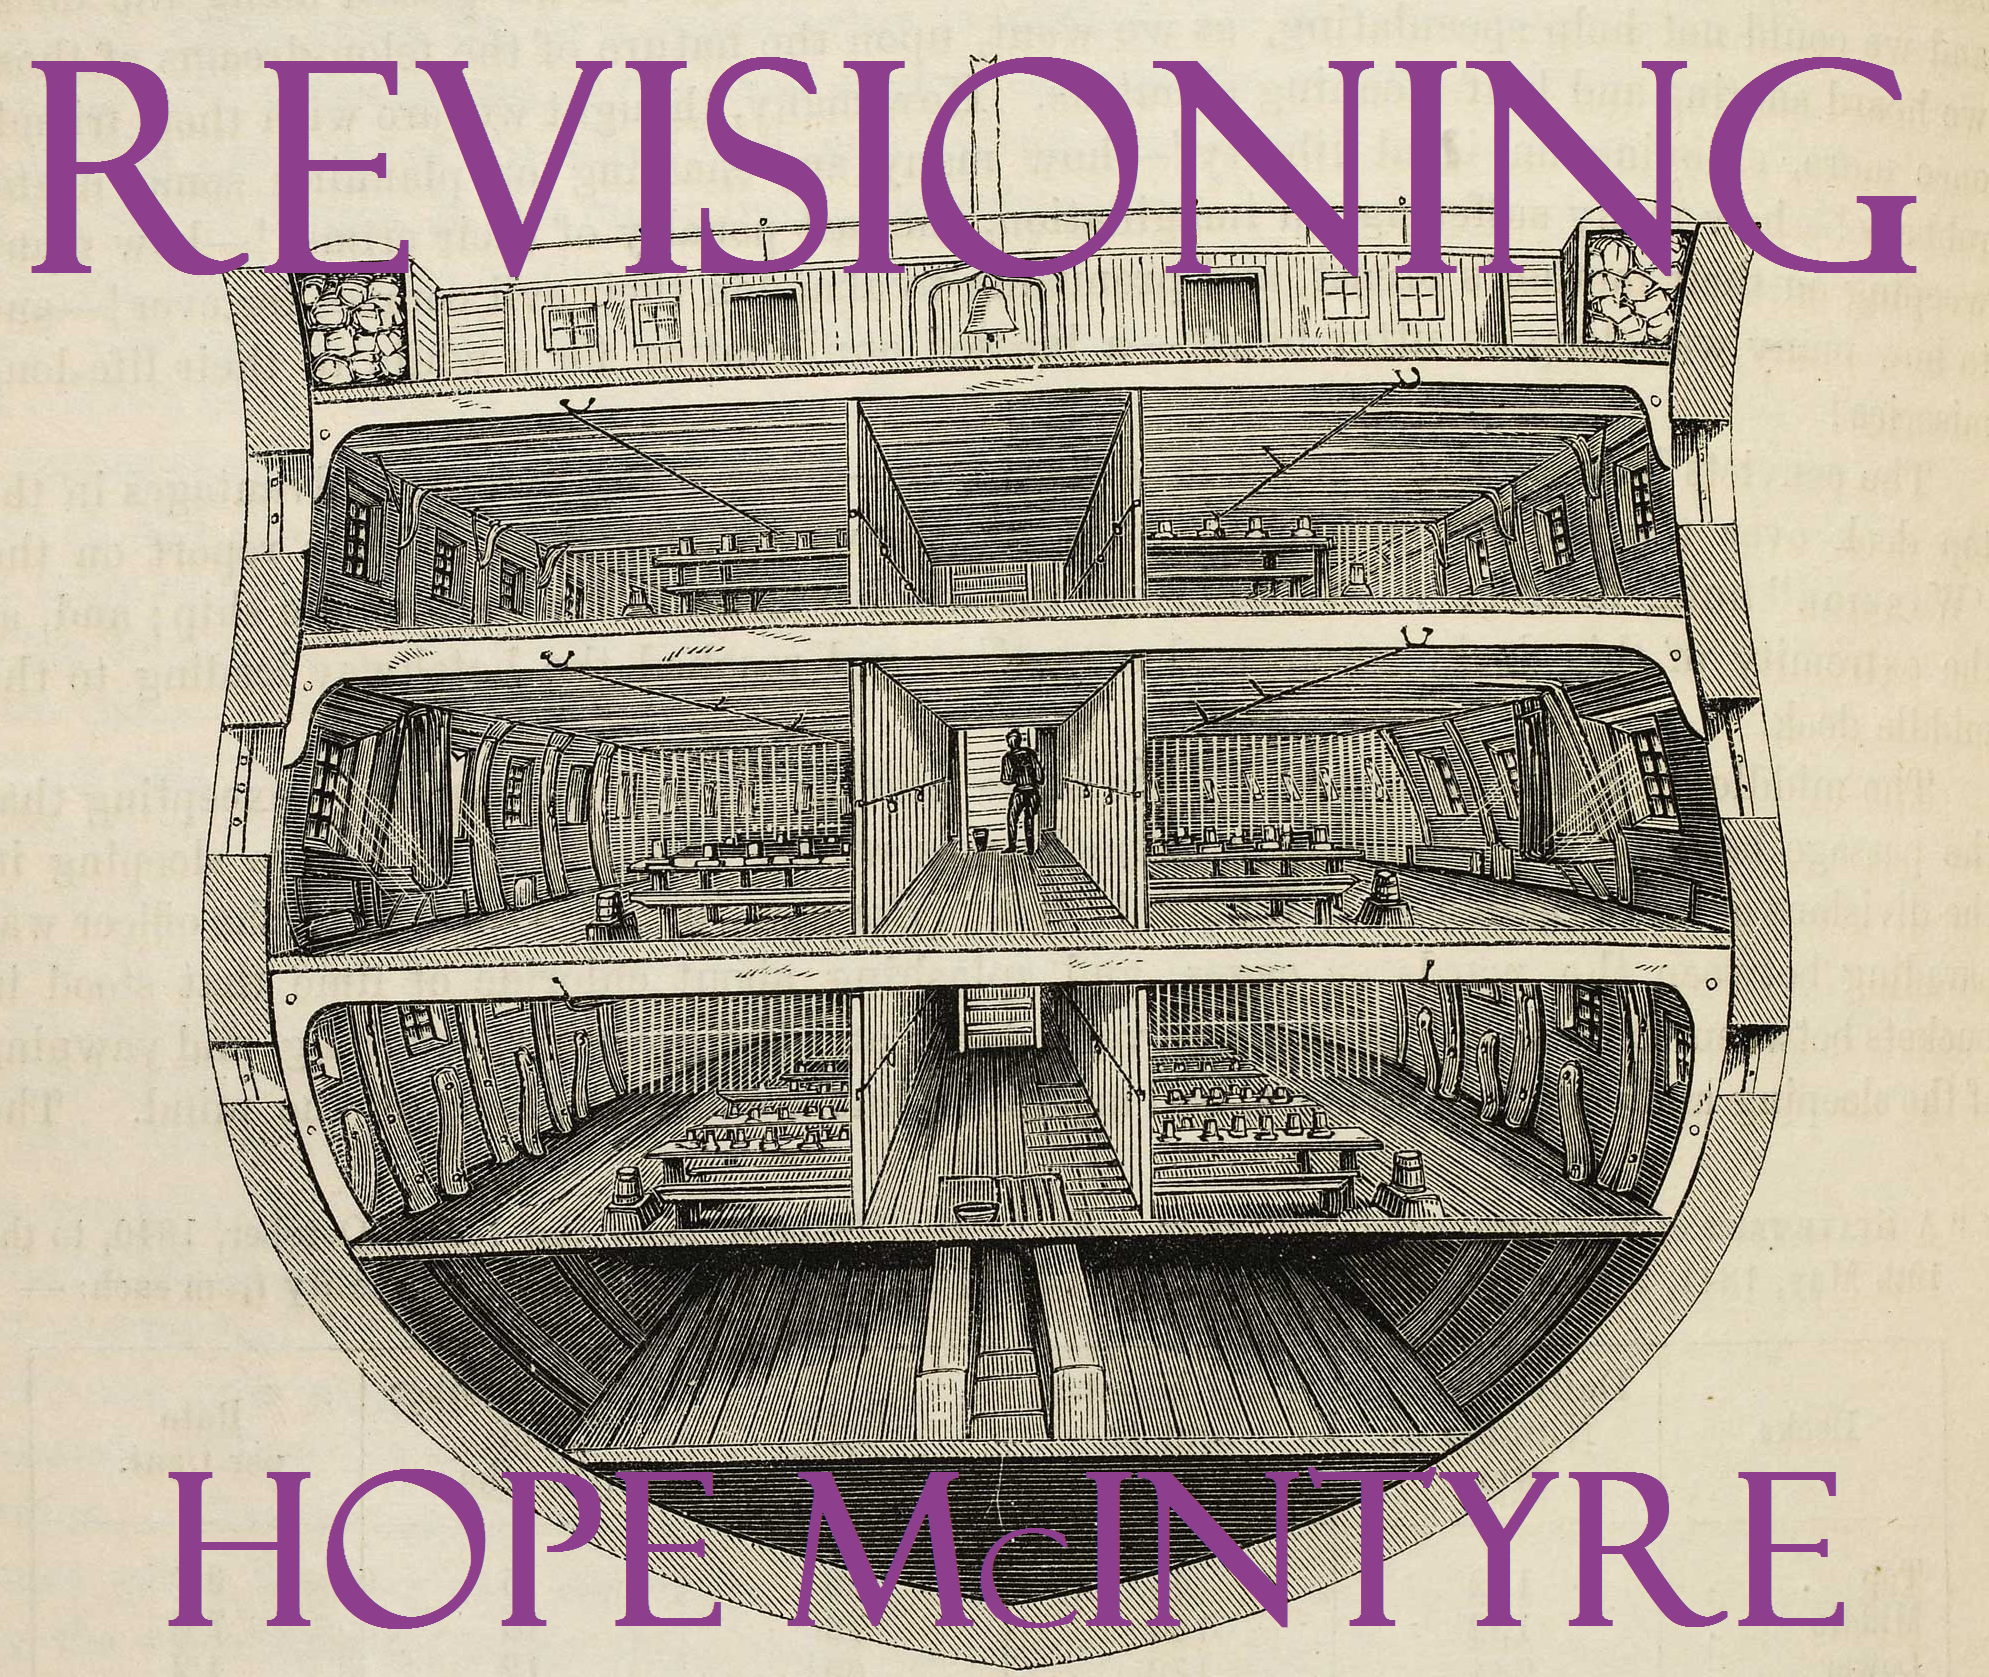 REVISIONING - A ONE-ACT PLAY BY HOPE